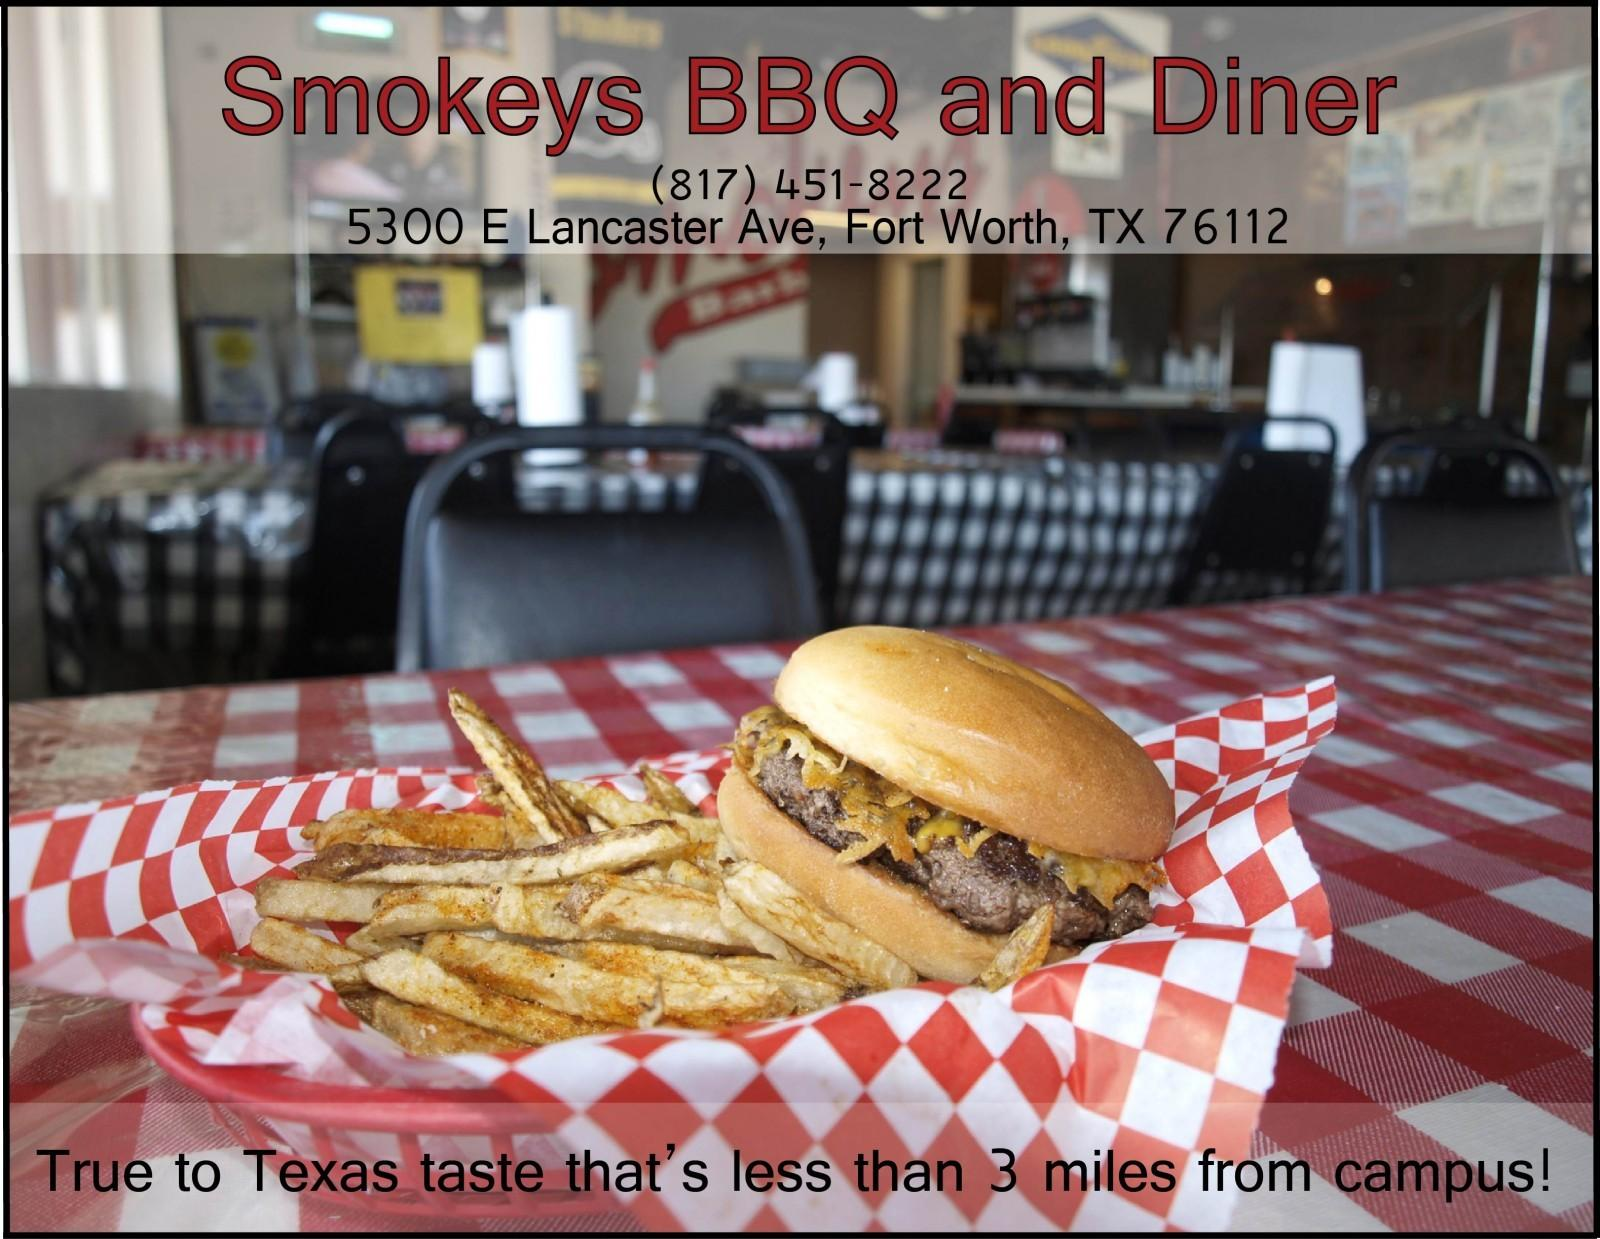 Smokeys BBQ and Diner